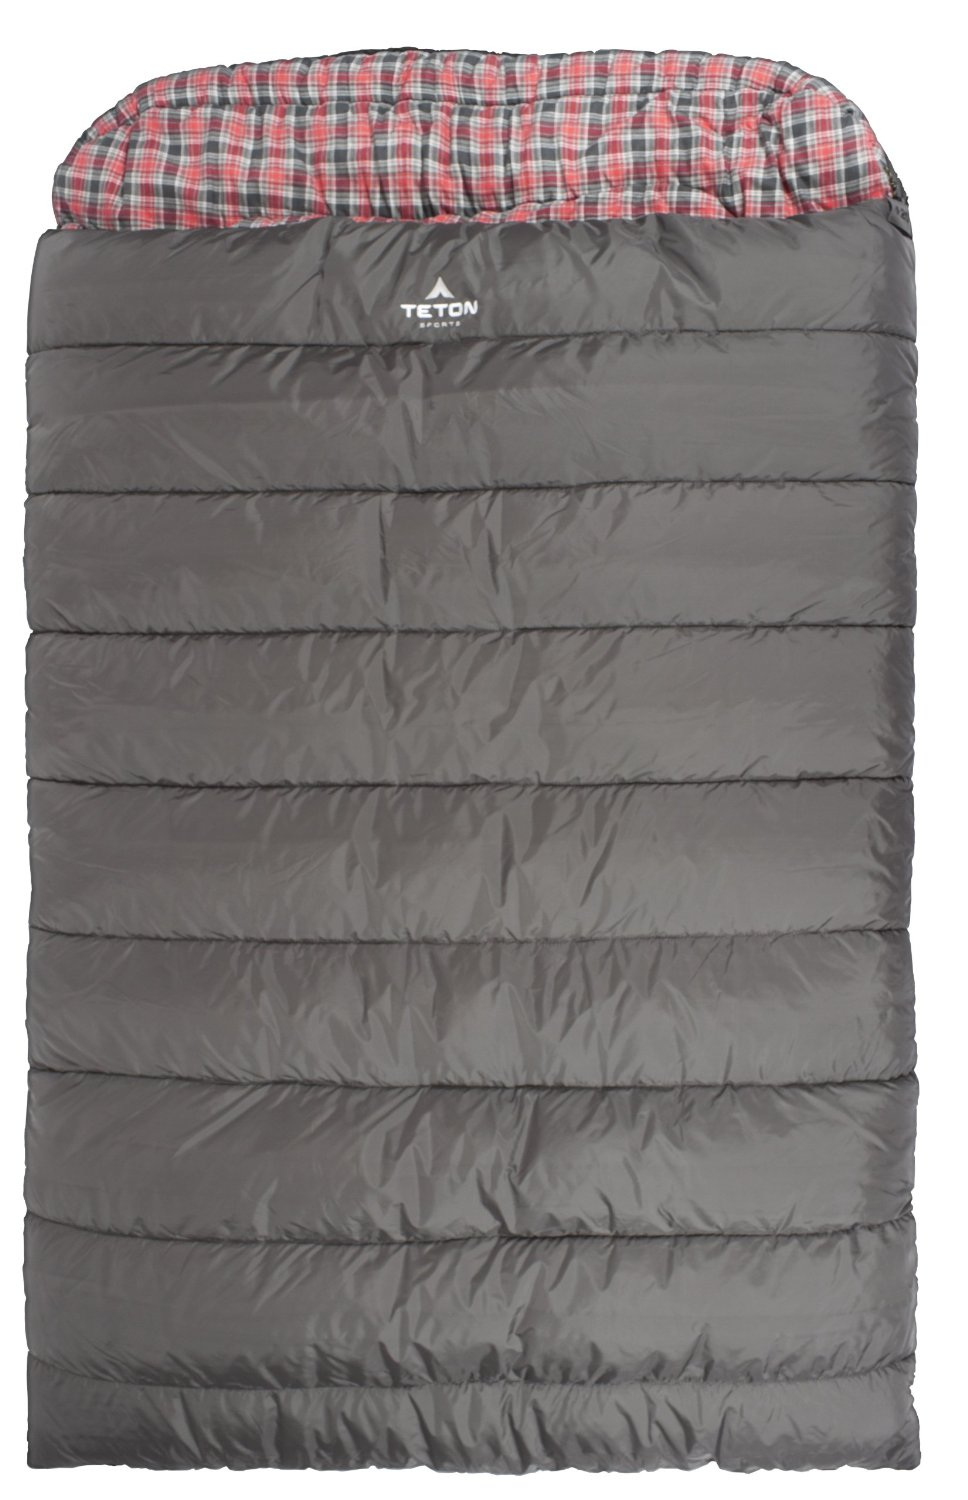 Teton double sleeping bag